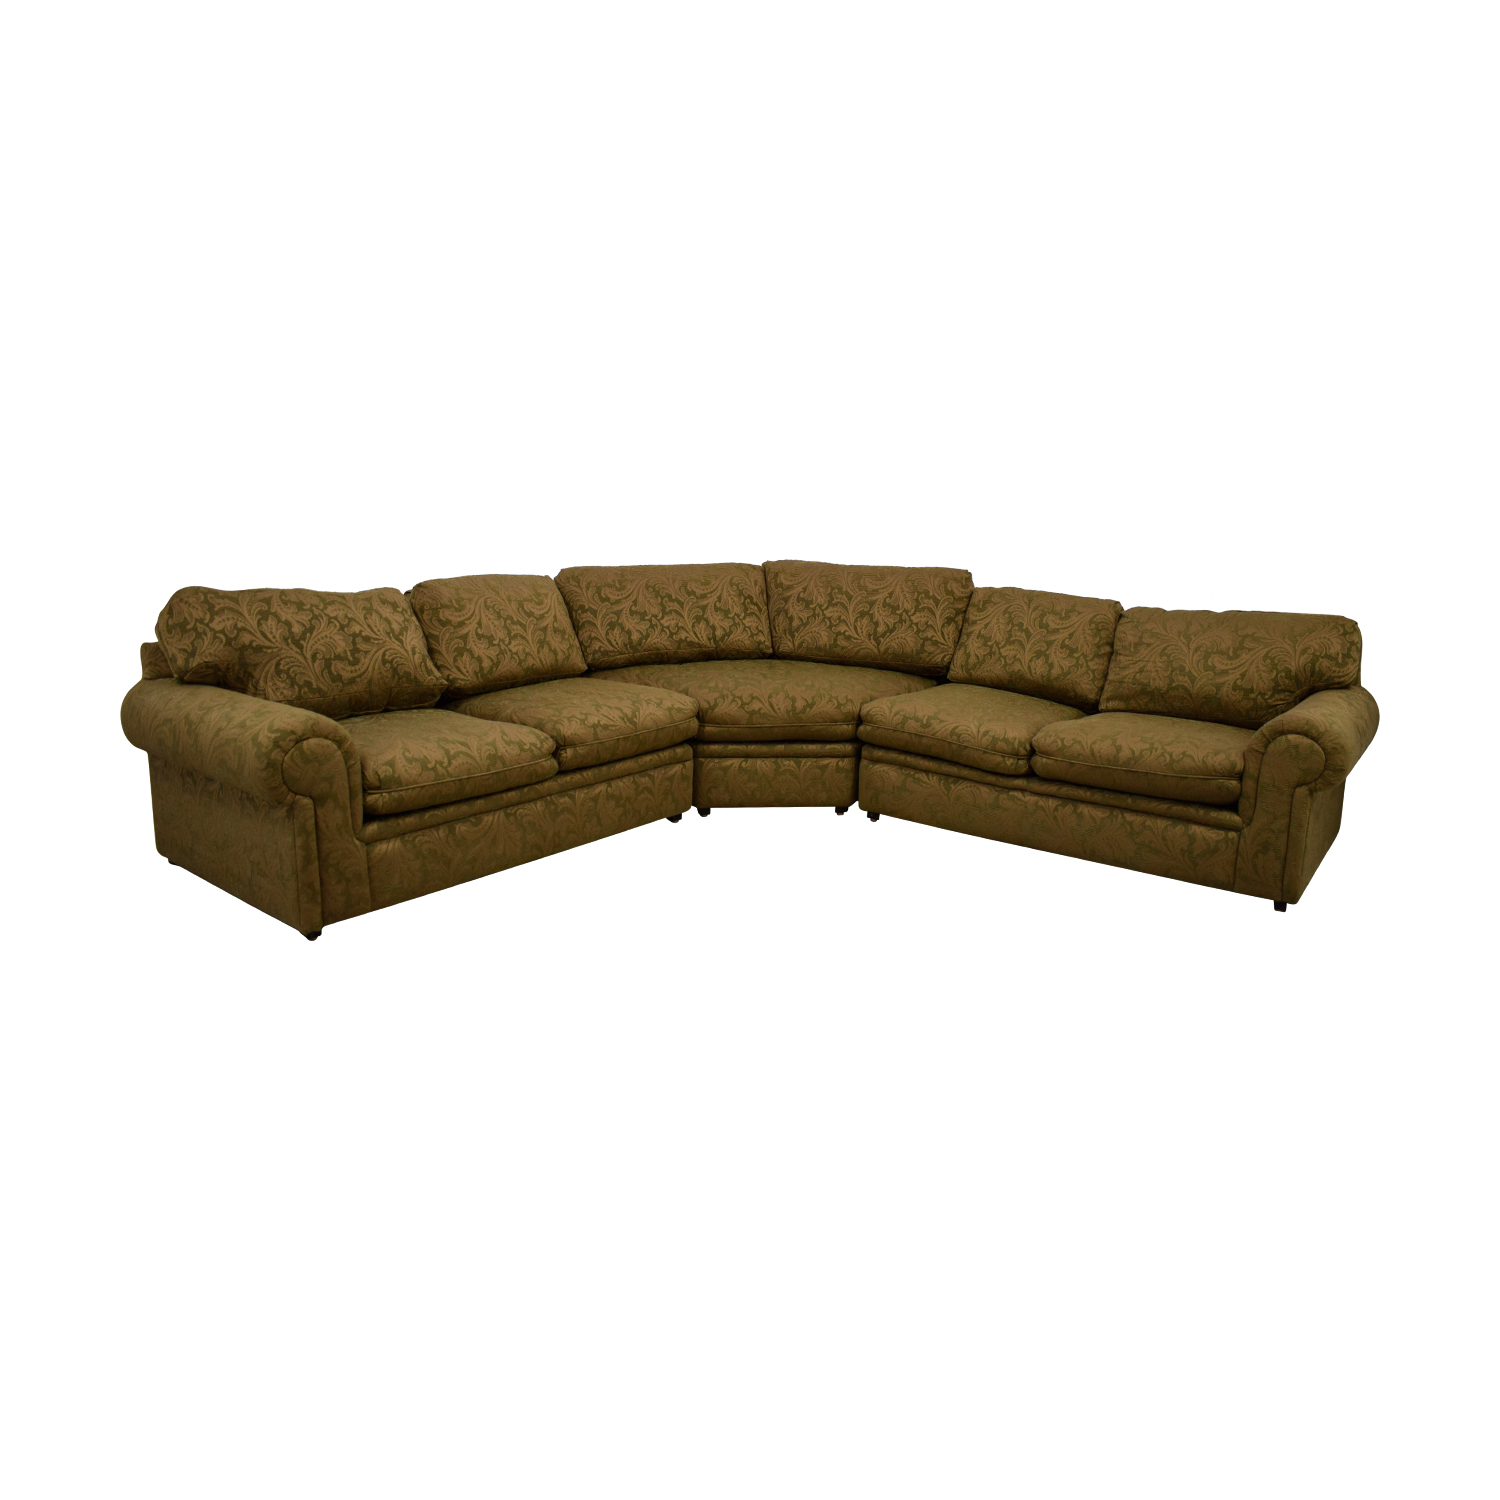 buy Bernhardt Bernhardt Green and Tan L-Shaped Curved Corner Sectional online